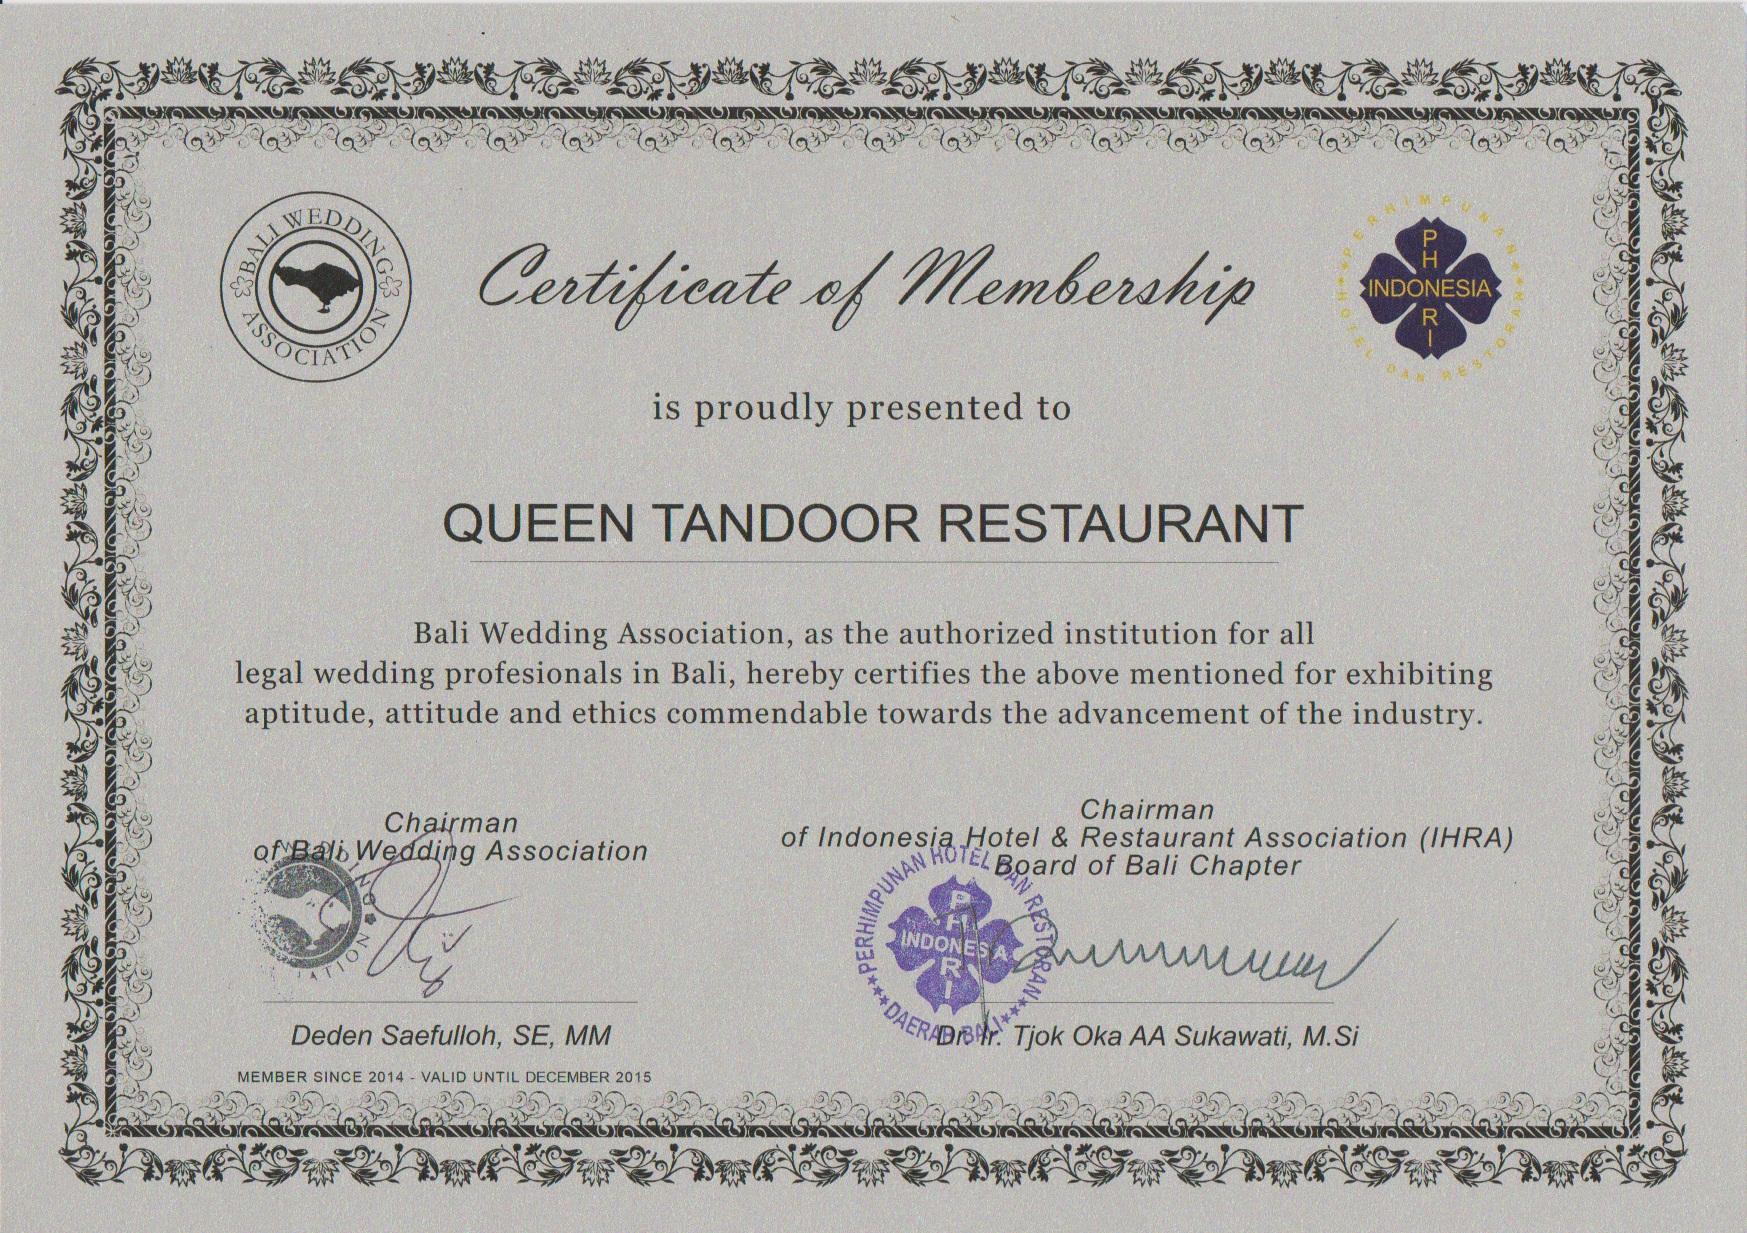 Certificate Of Membership Queens Tandoor from BWA & PHRI 2015